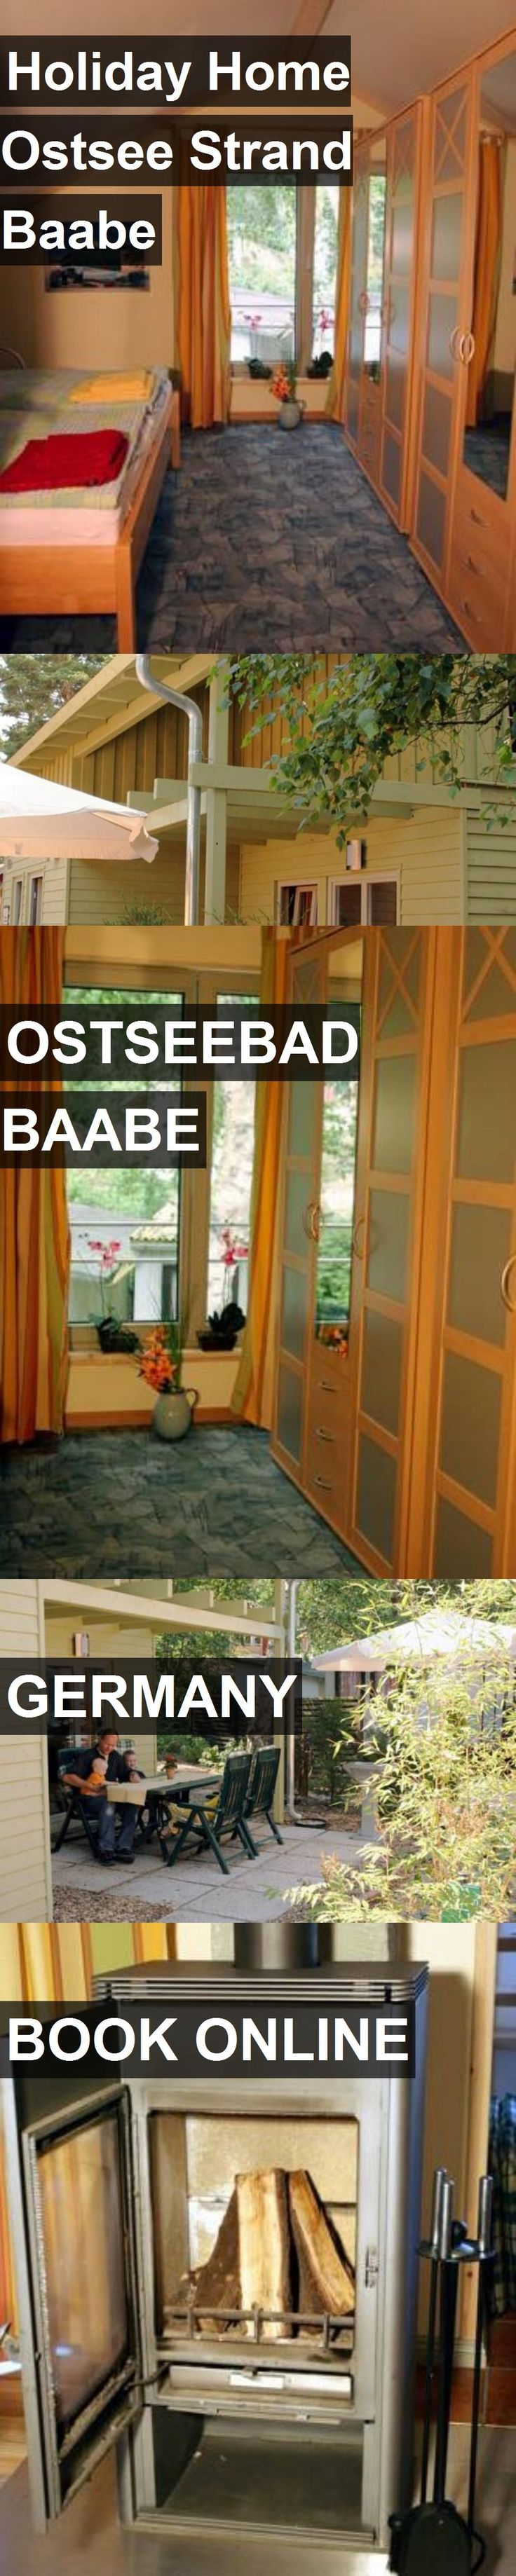 Hotel Holiday Home Ostsee Strand Baabe in Ostseebad Baabe, Germany. For more information, photos, reviews and best prices please follow the link. #Germany #OstseebadBaabe #travel #vacation #hotel